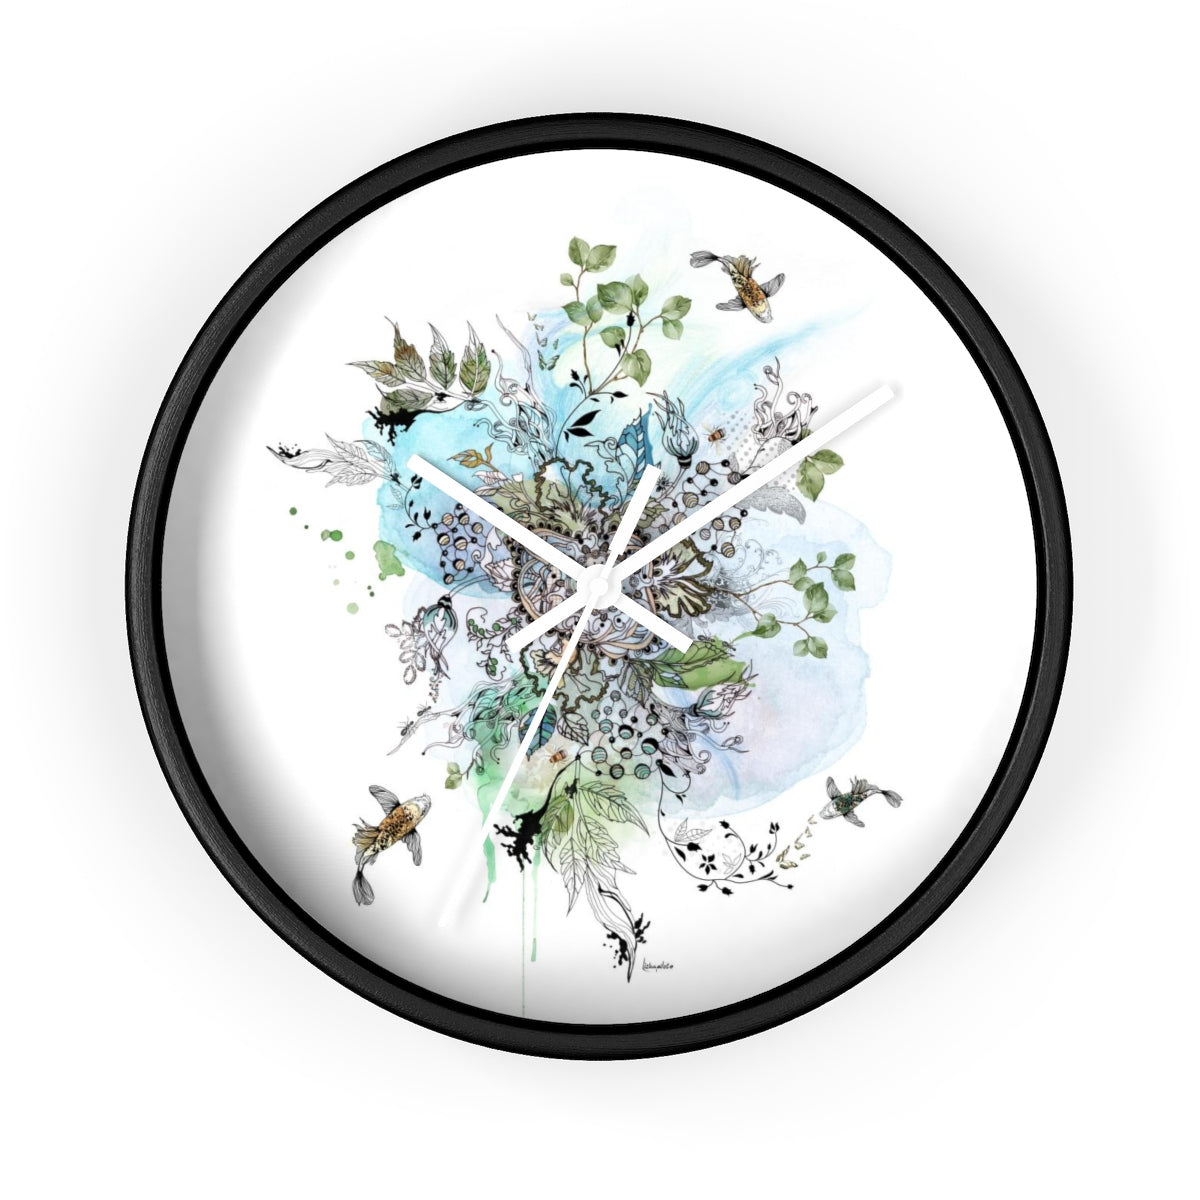 Blue mandala wall clock - Liz Kapiloto Art & Design